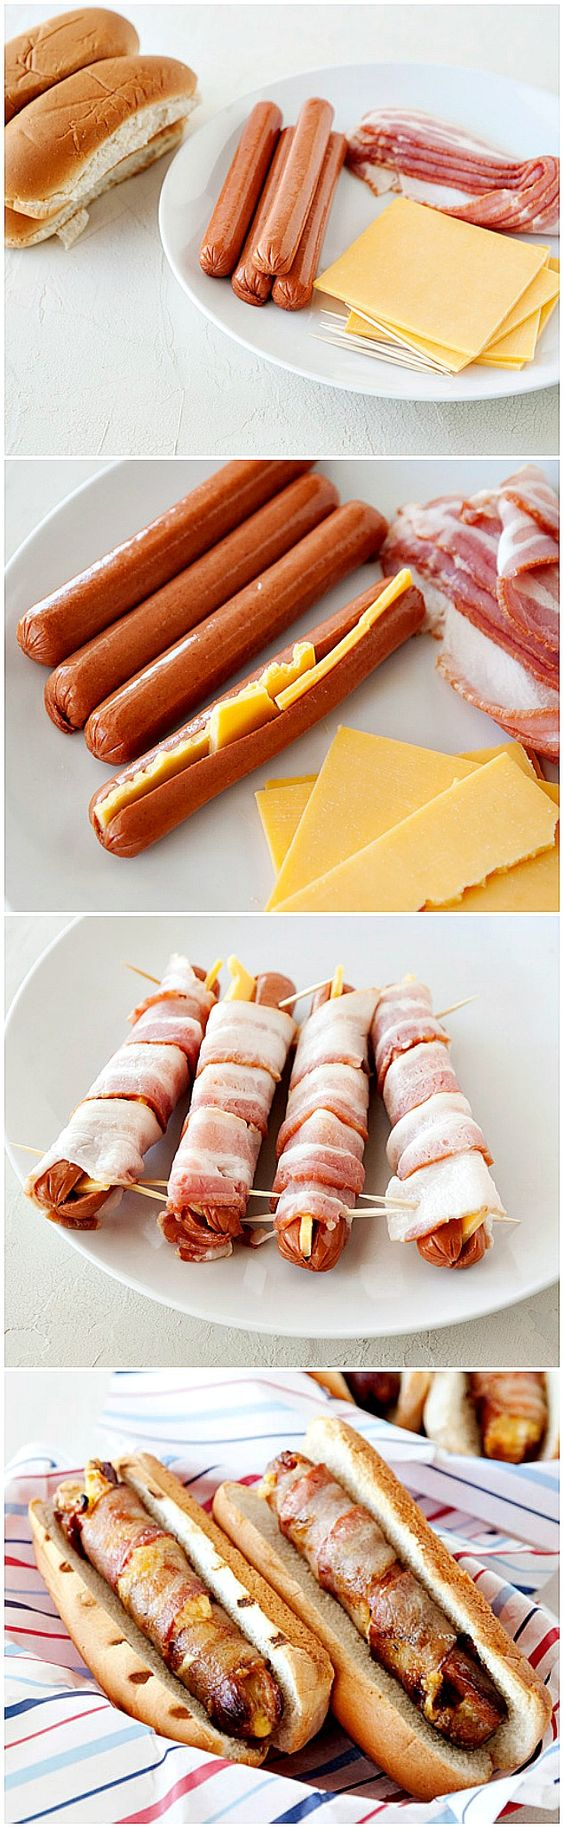 Hmmm like the idea but using the spinach/mozzarella sausage dogs instead & using a different kind of cheese than cheddar